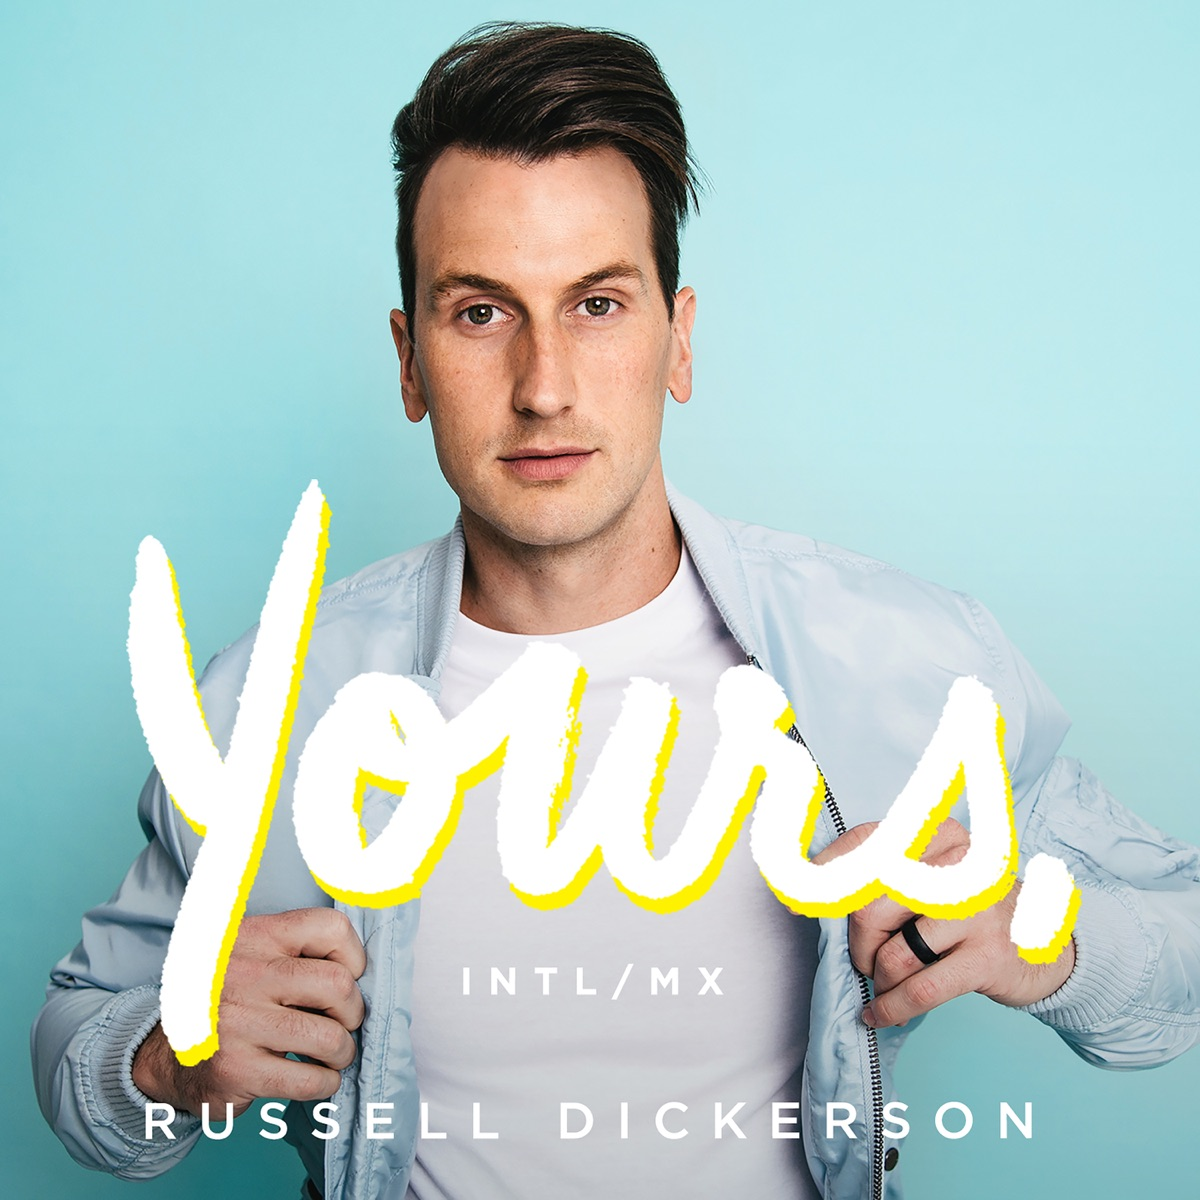 Yours Intl Mix - Single Russell Dickerson CD cover